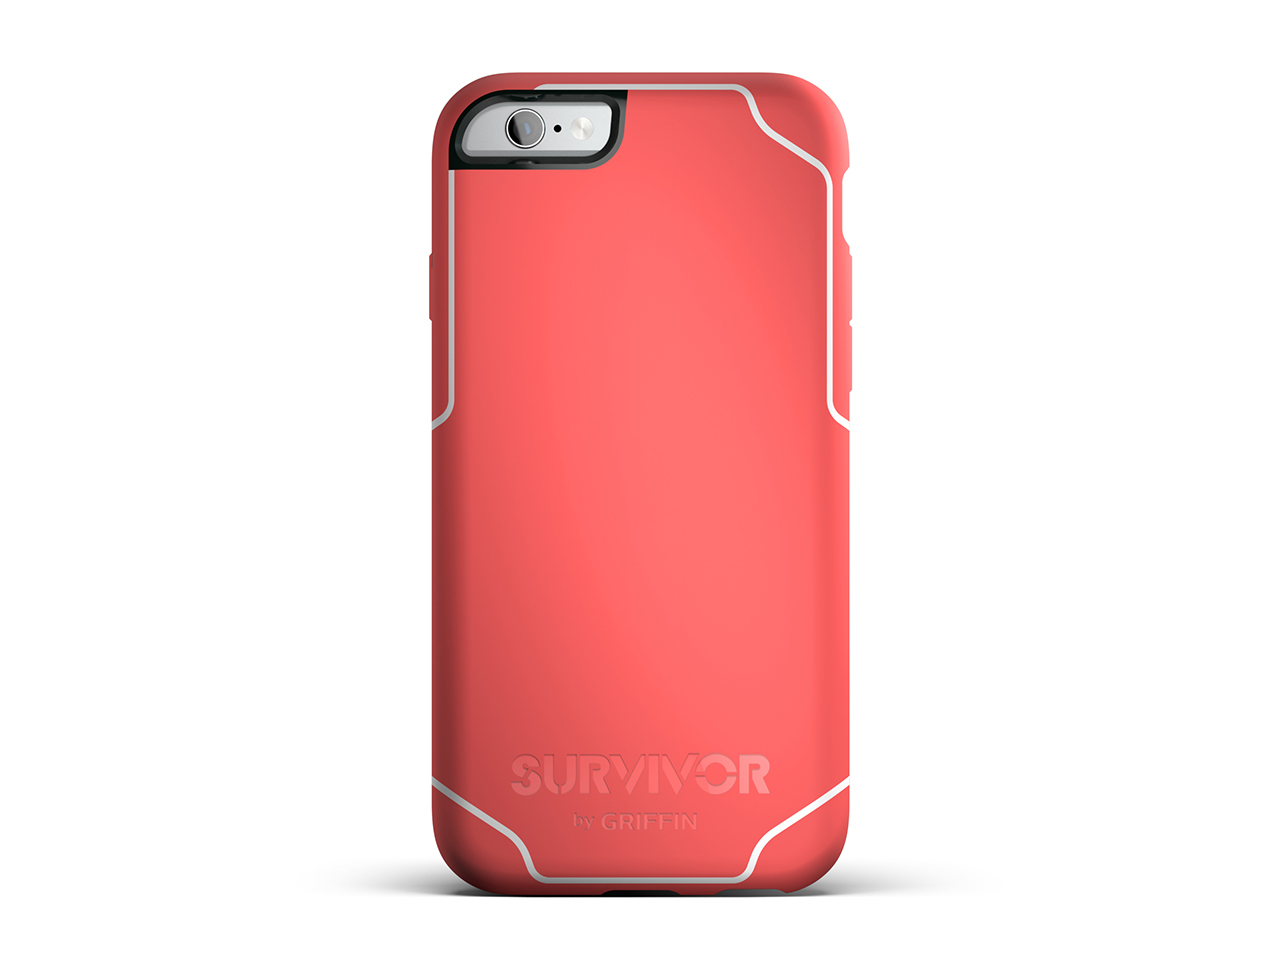 Coral/White Survivor Journey for iPhone 6/6s Protective Case - 6ft Drop Protection